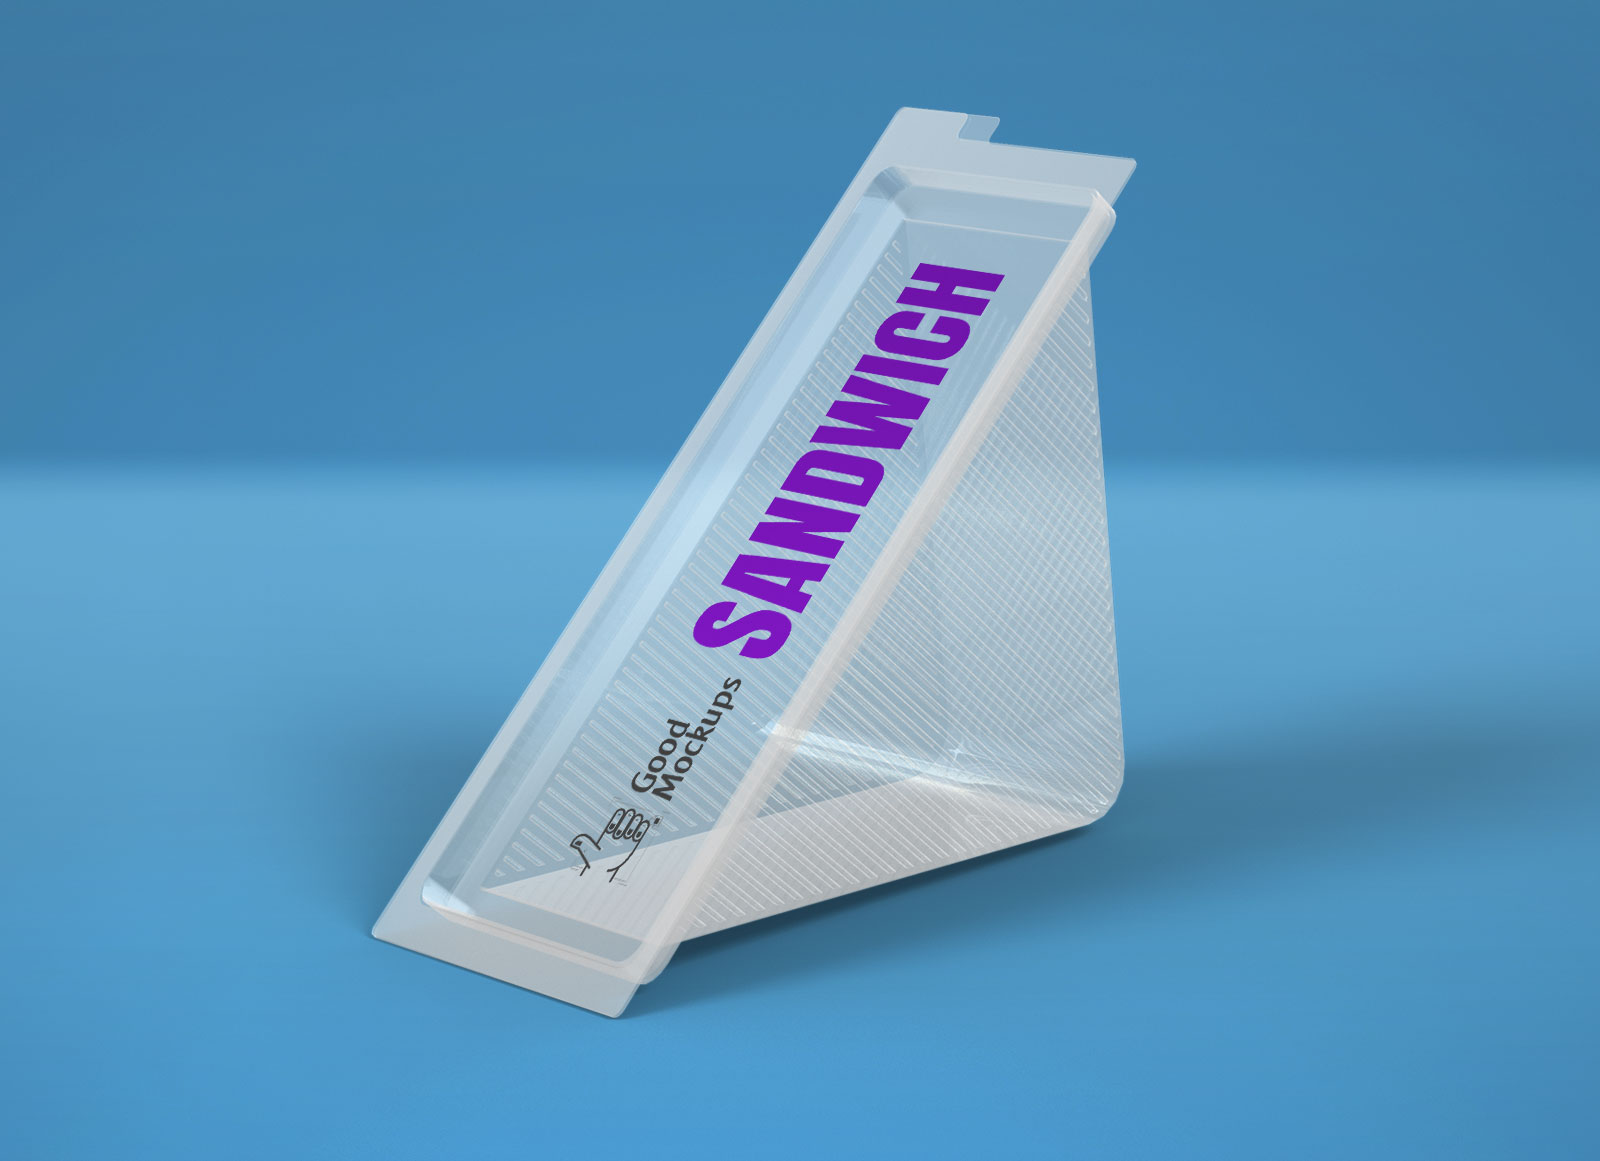 Free-Transparent-Disposable-Sandwich-Box-Packaging-Mockup-PSD